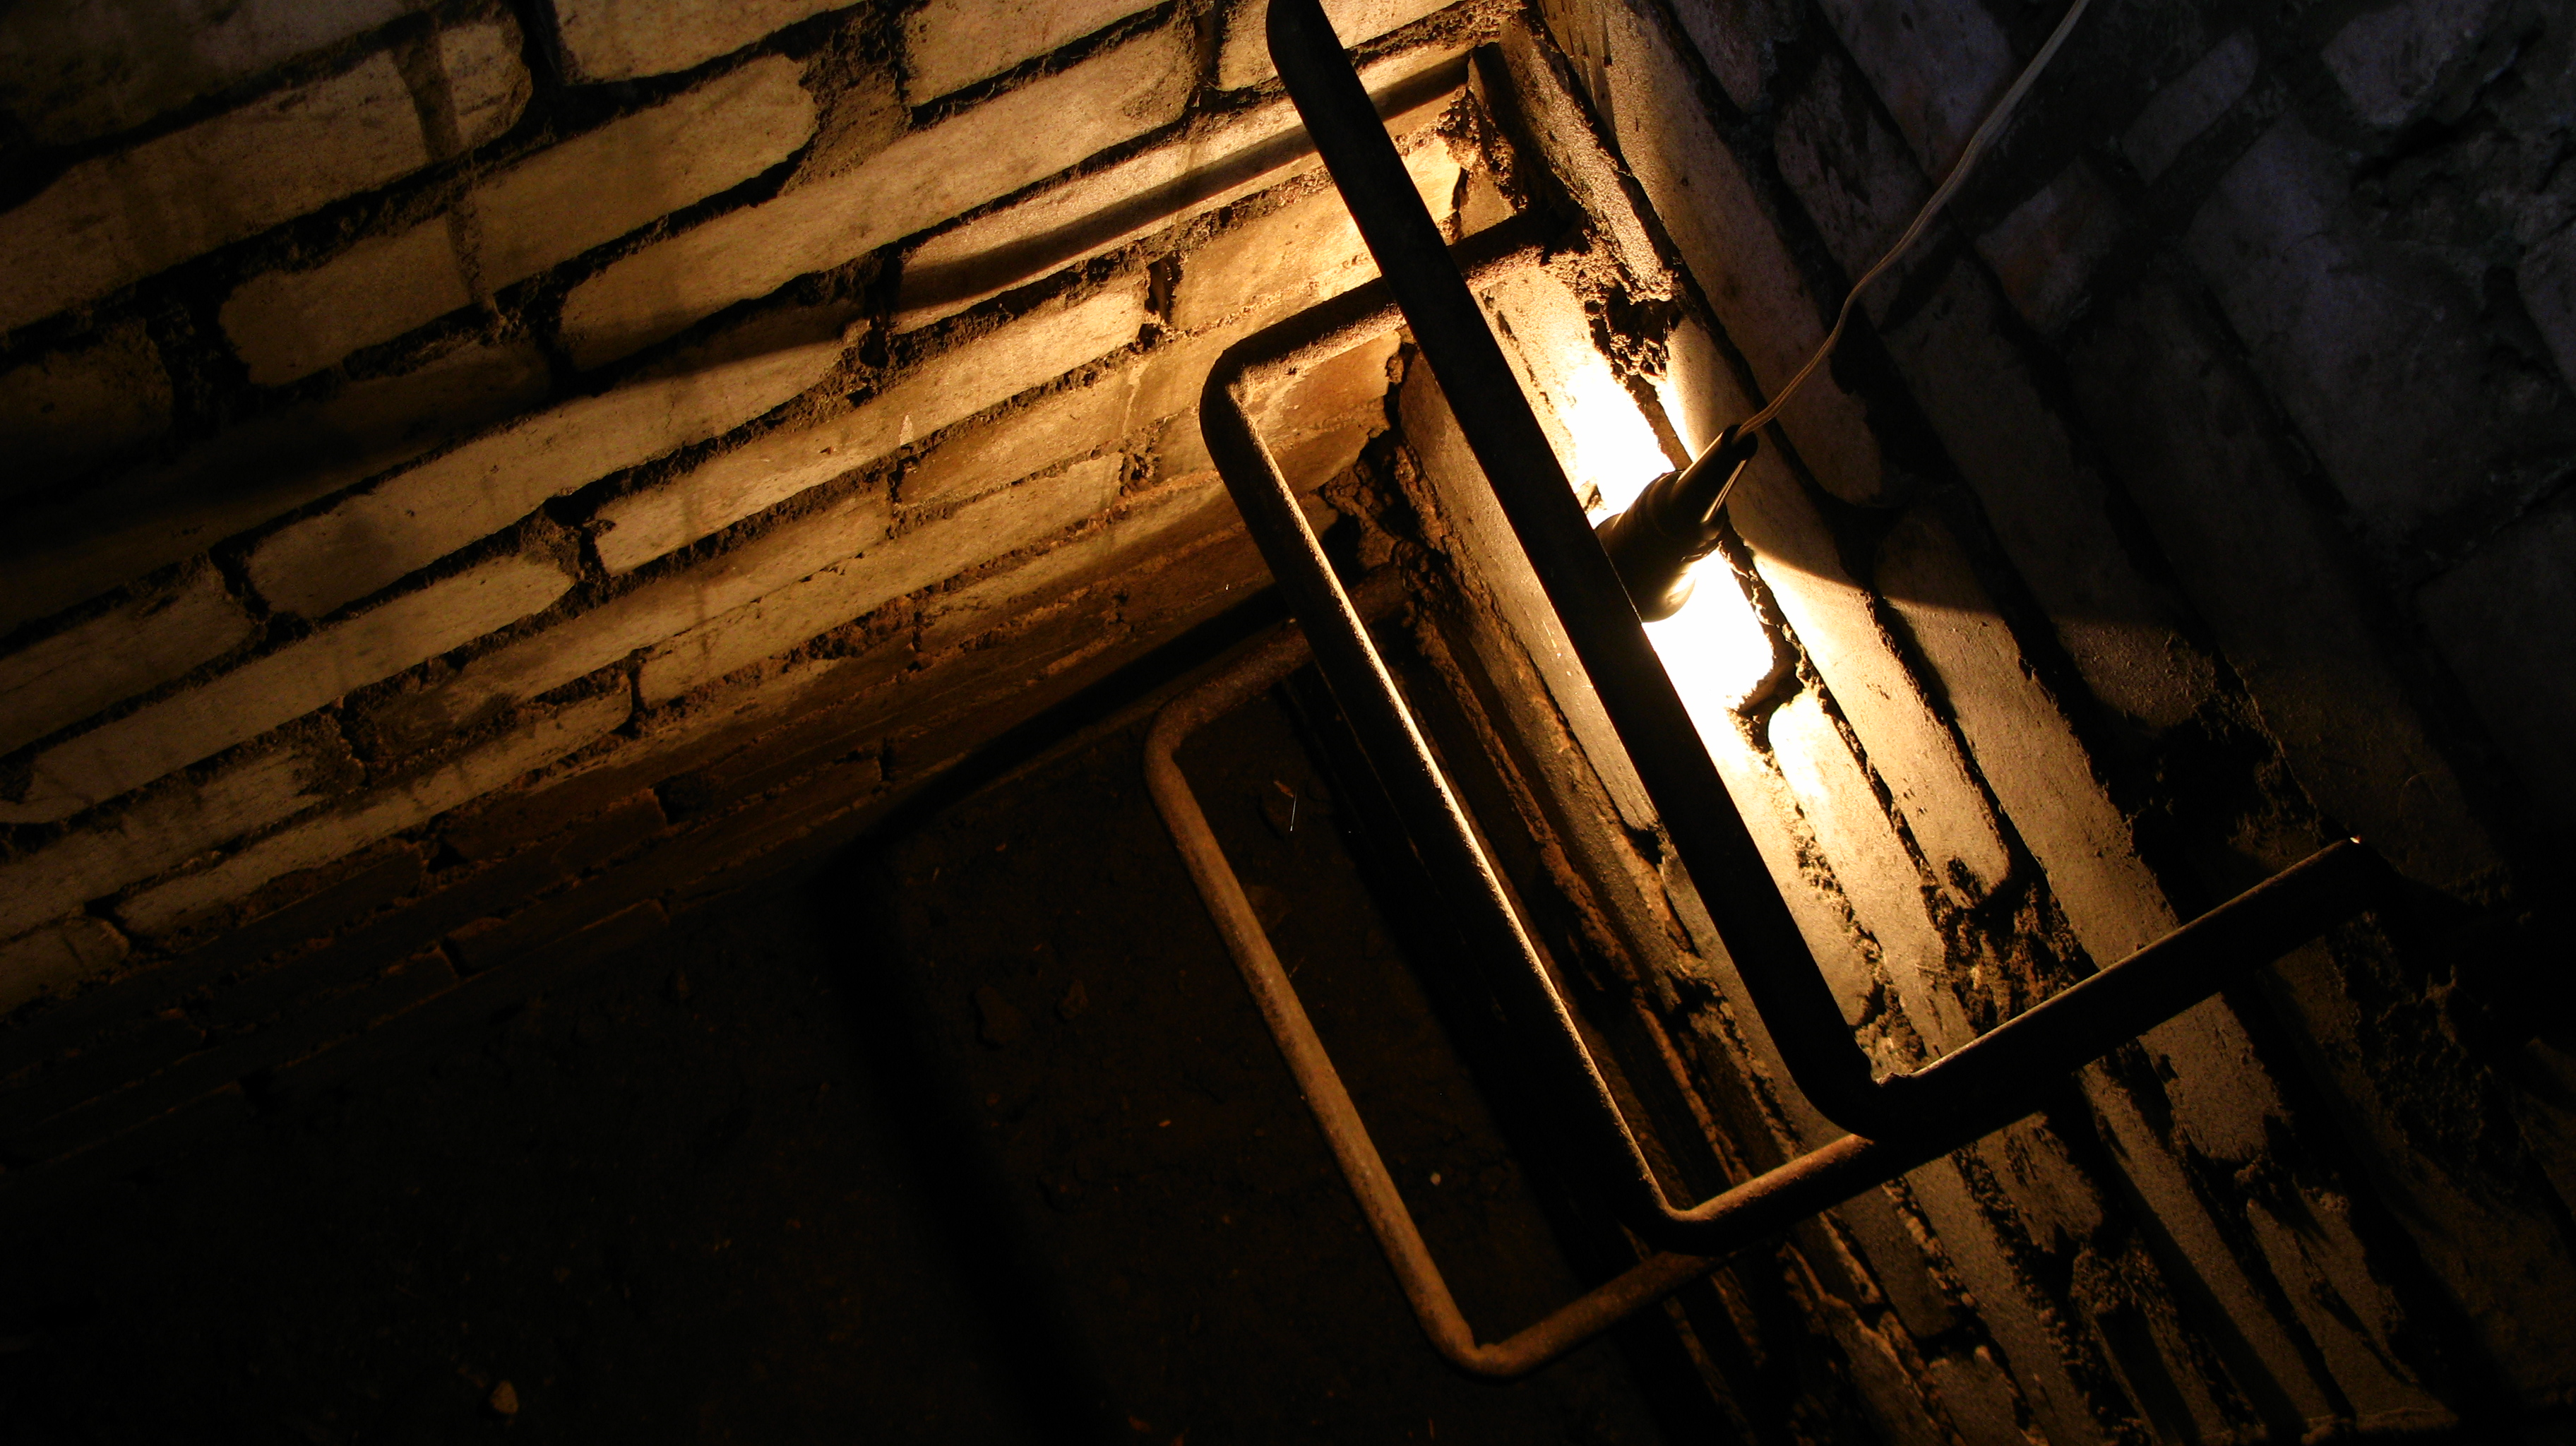 Cellar entrance with a light bulb shining from behind a step of the ladder